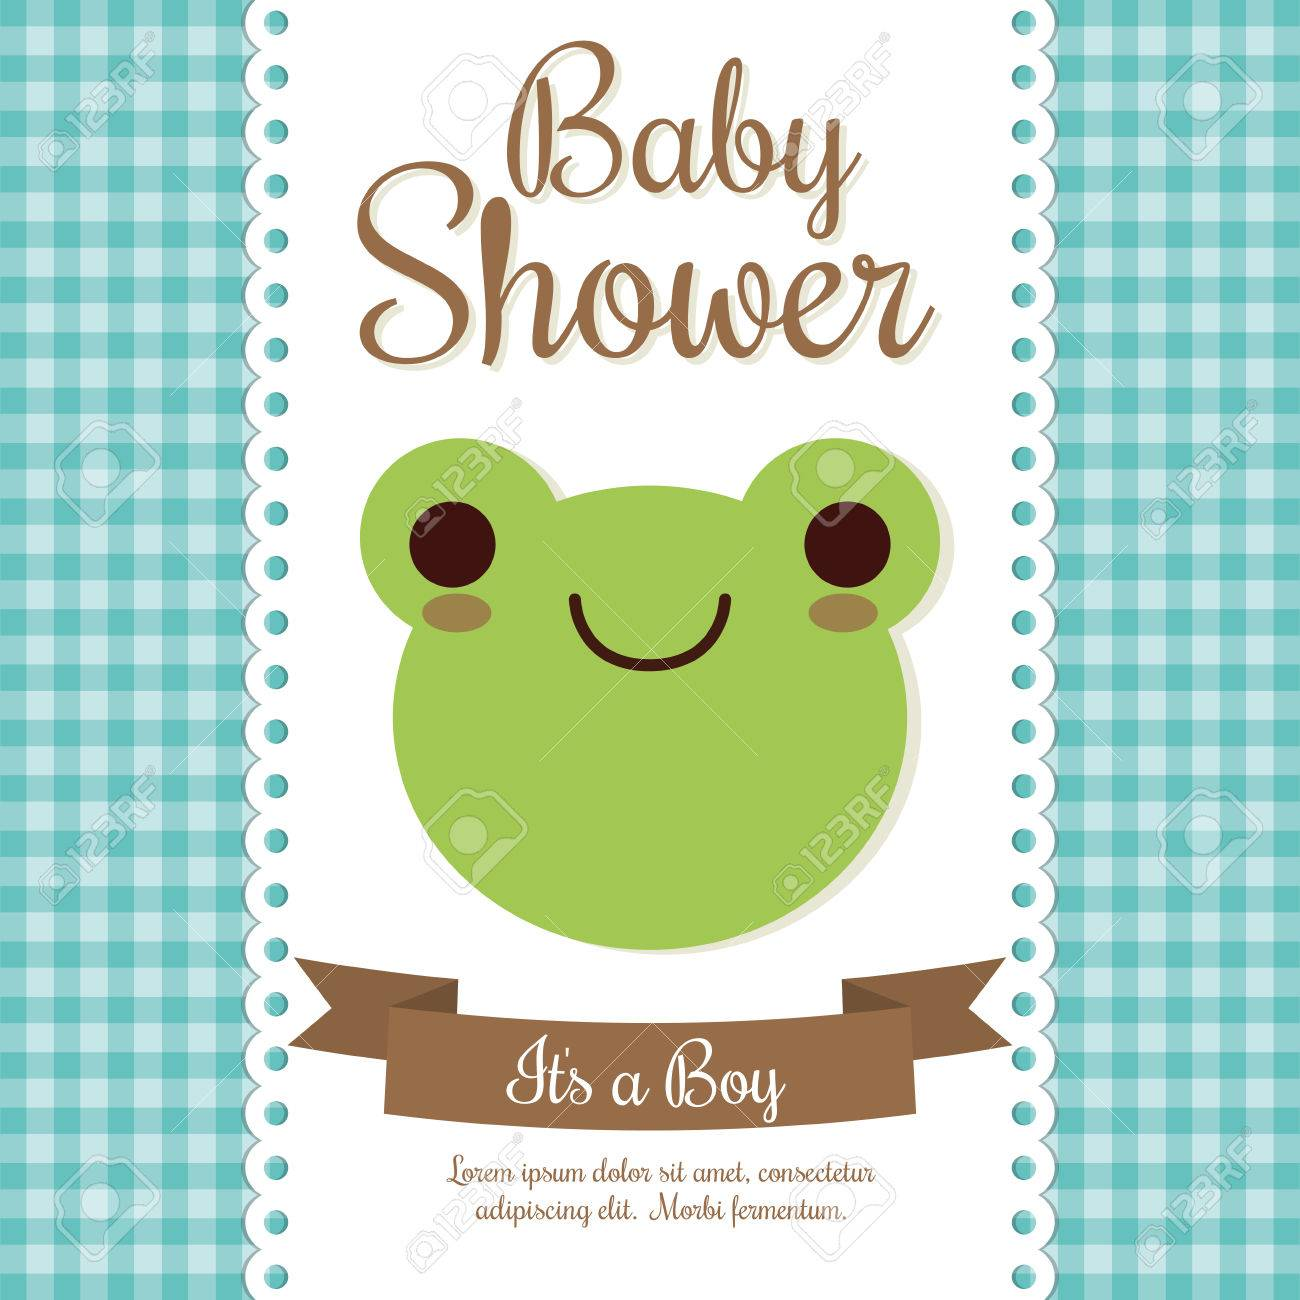 Baby Shower Invitation Design Represented By Frog Cartoon. Pastel ...